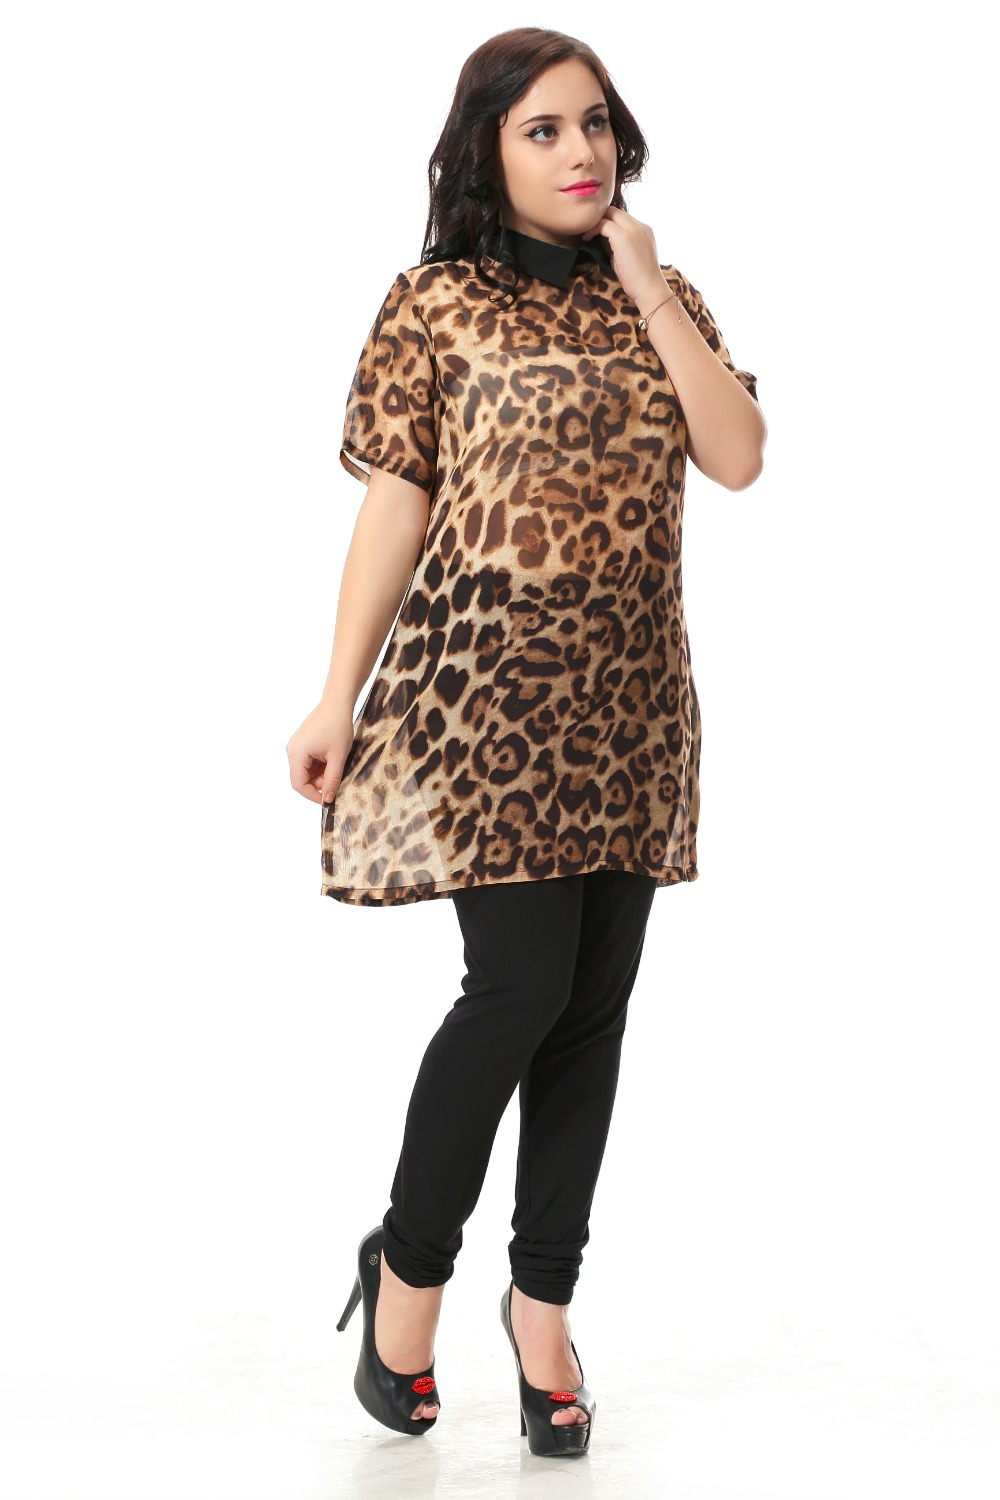 Plus Size Leopard Printed Dress Women With Hollow Out Design Sexy